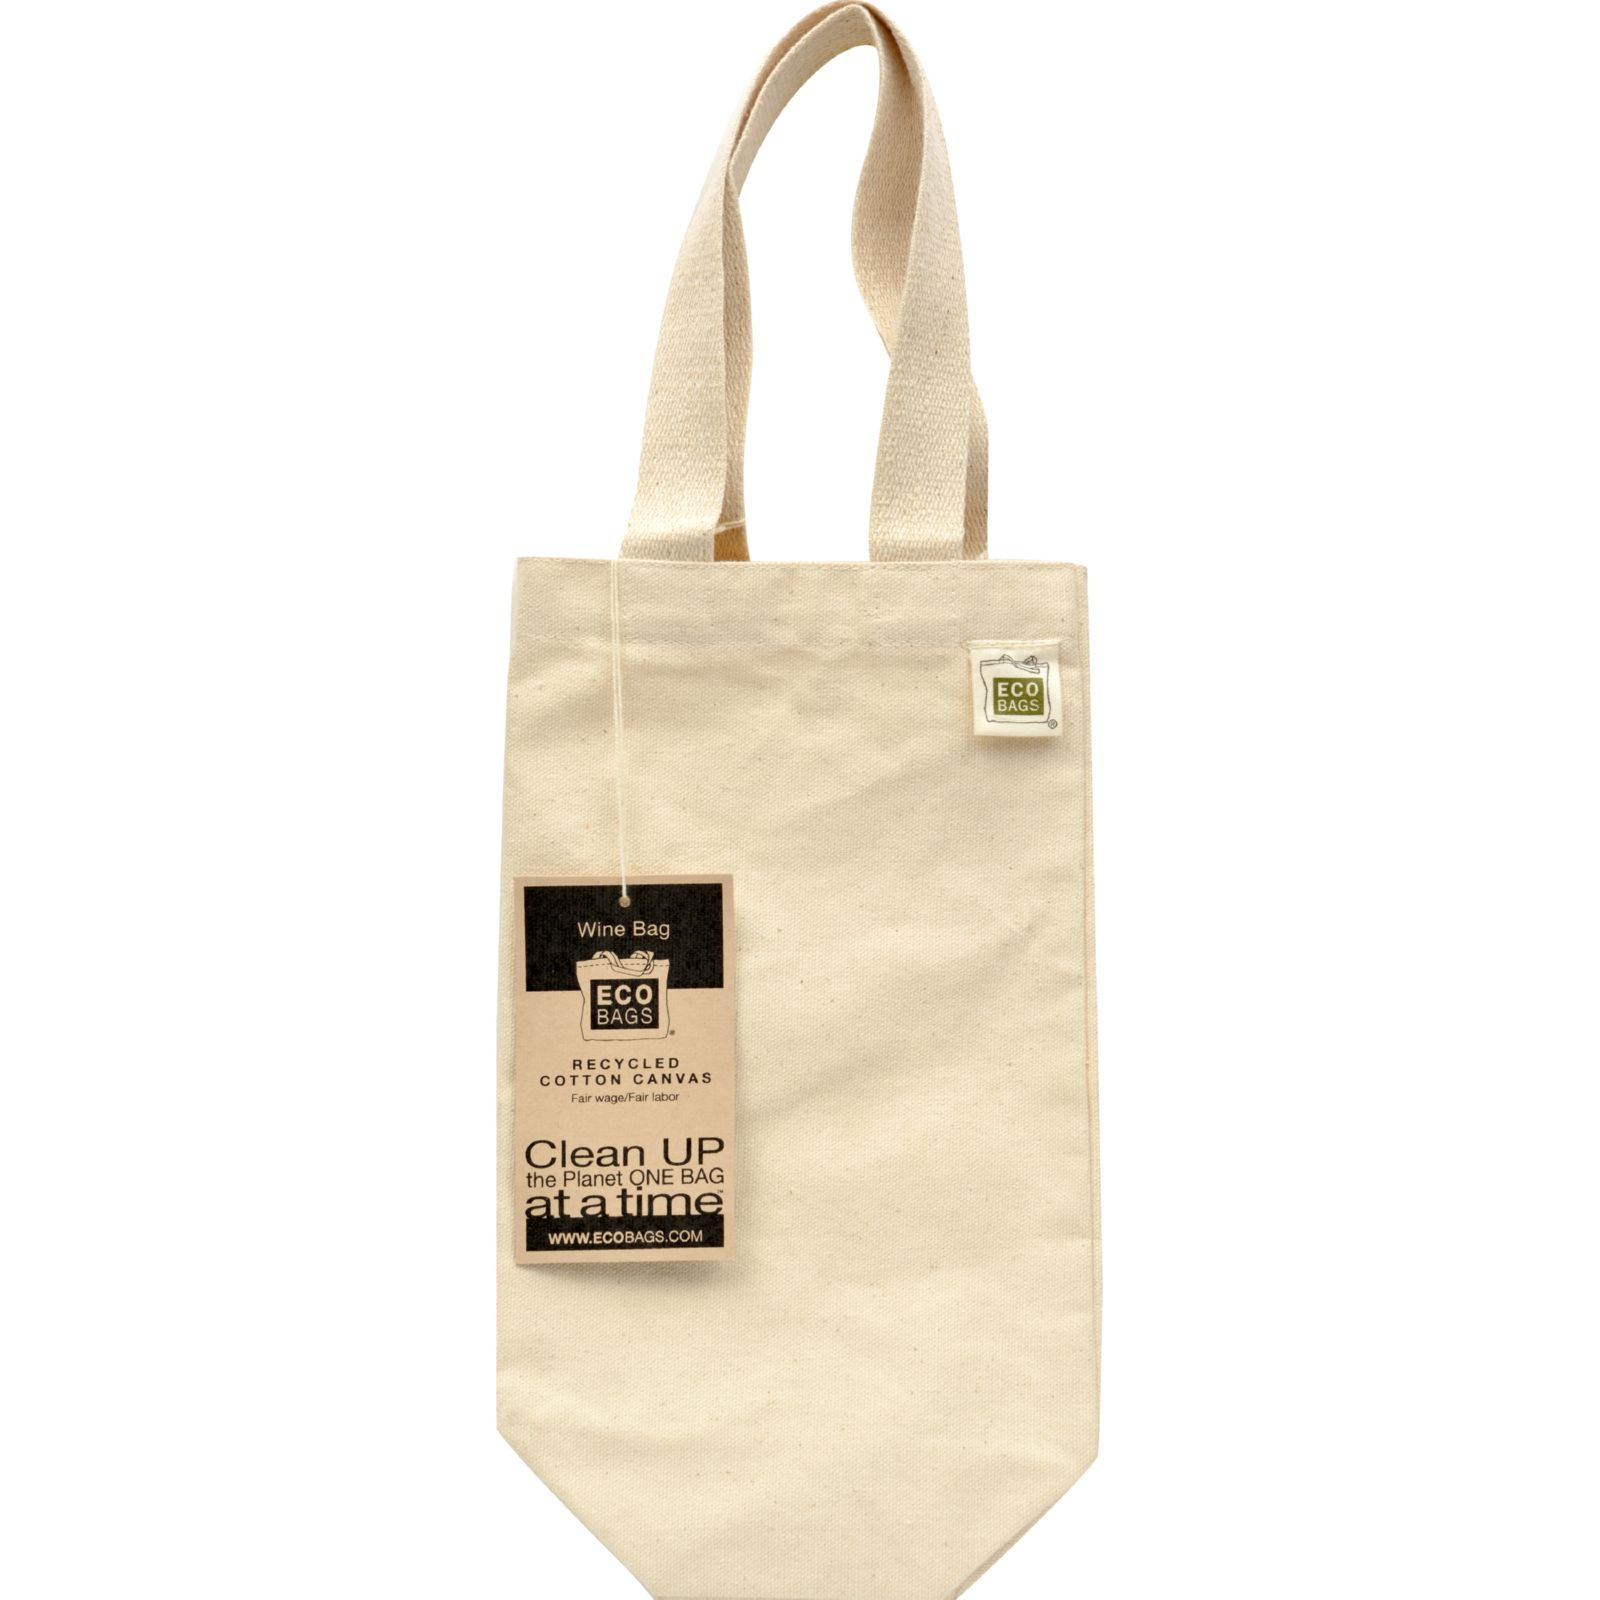 ECOBAGS Canvas Wine Bag (1 bottle) 6.5x12 - Recycled Cotton - 1 Bag